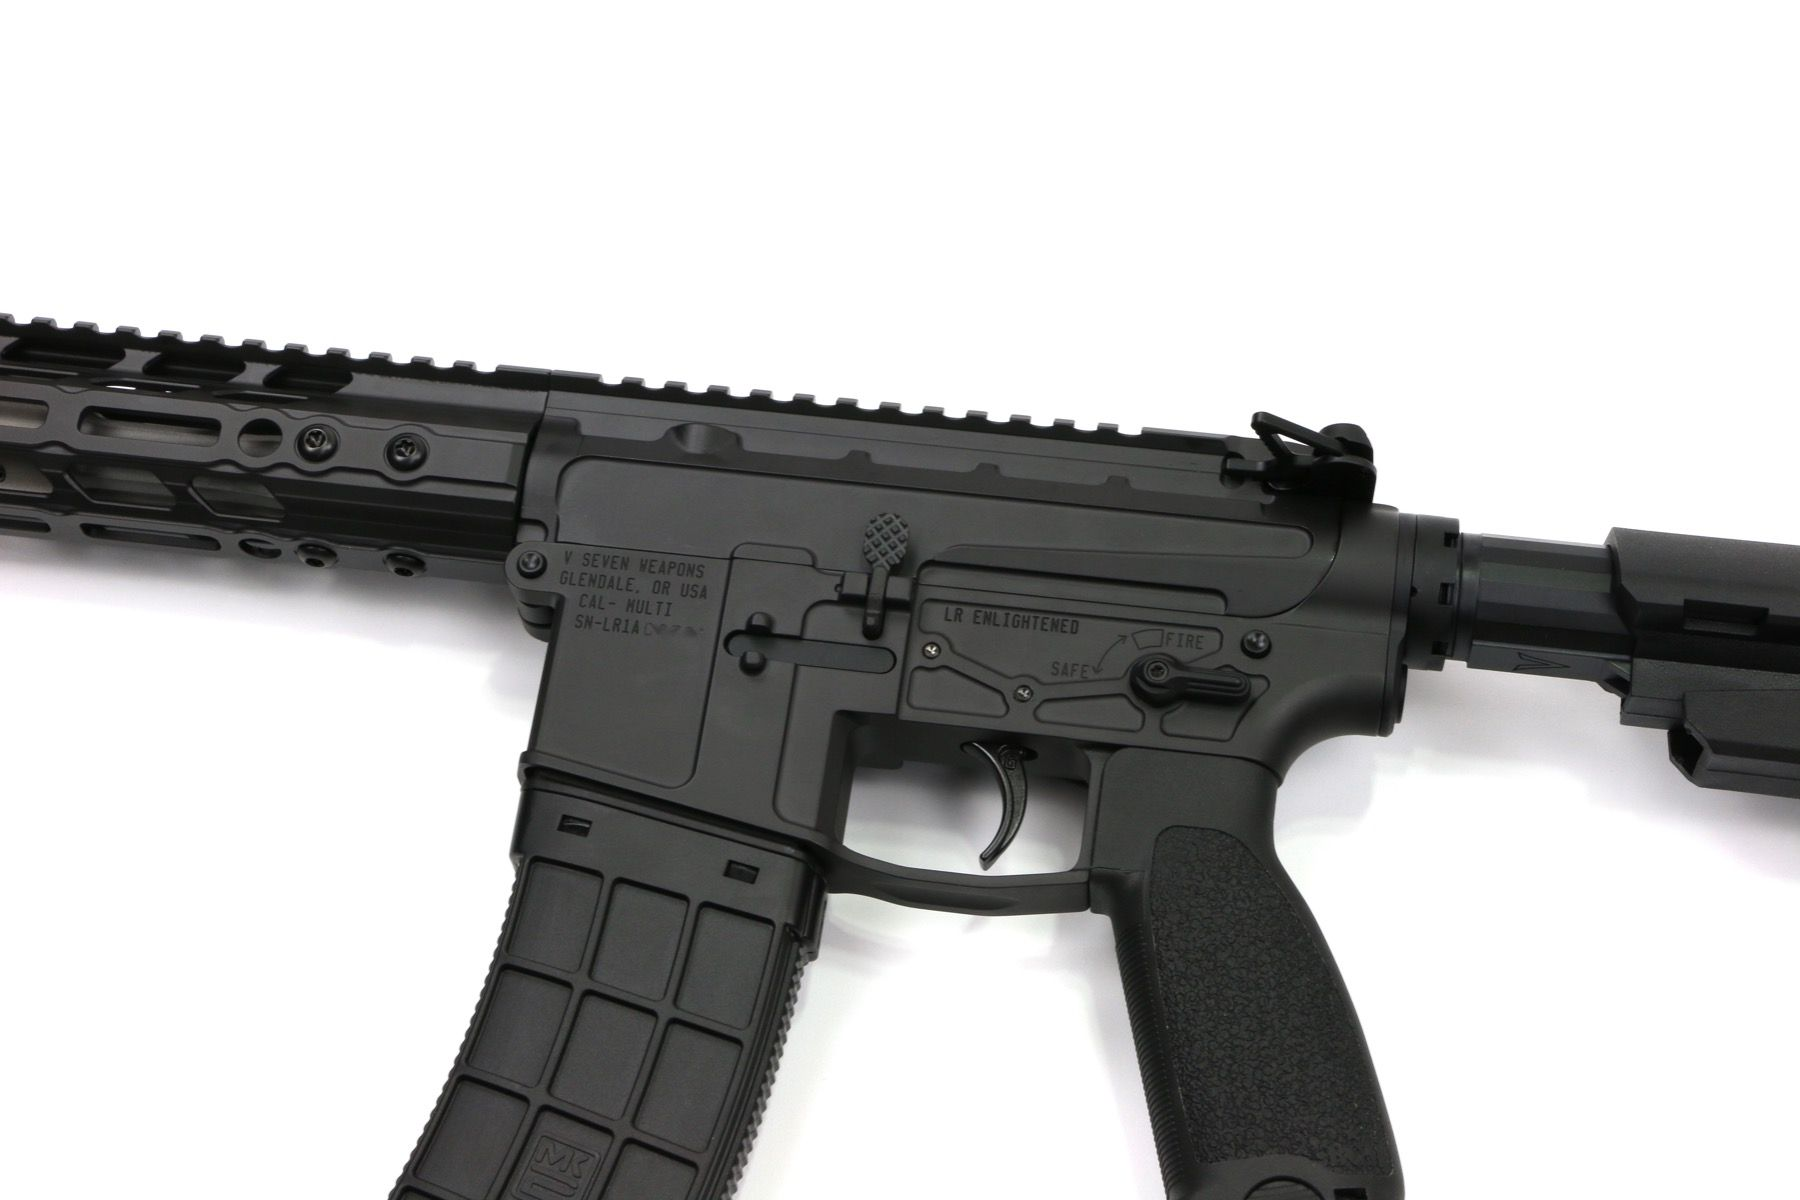 V SEVEN WEAPON SYSTEMS ADDS NEW 10 25″ LR ENLIGHTENED 300